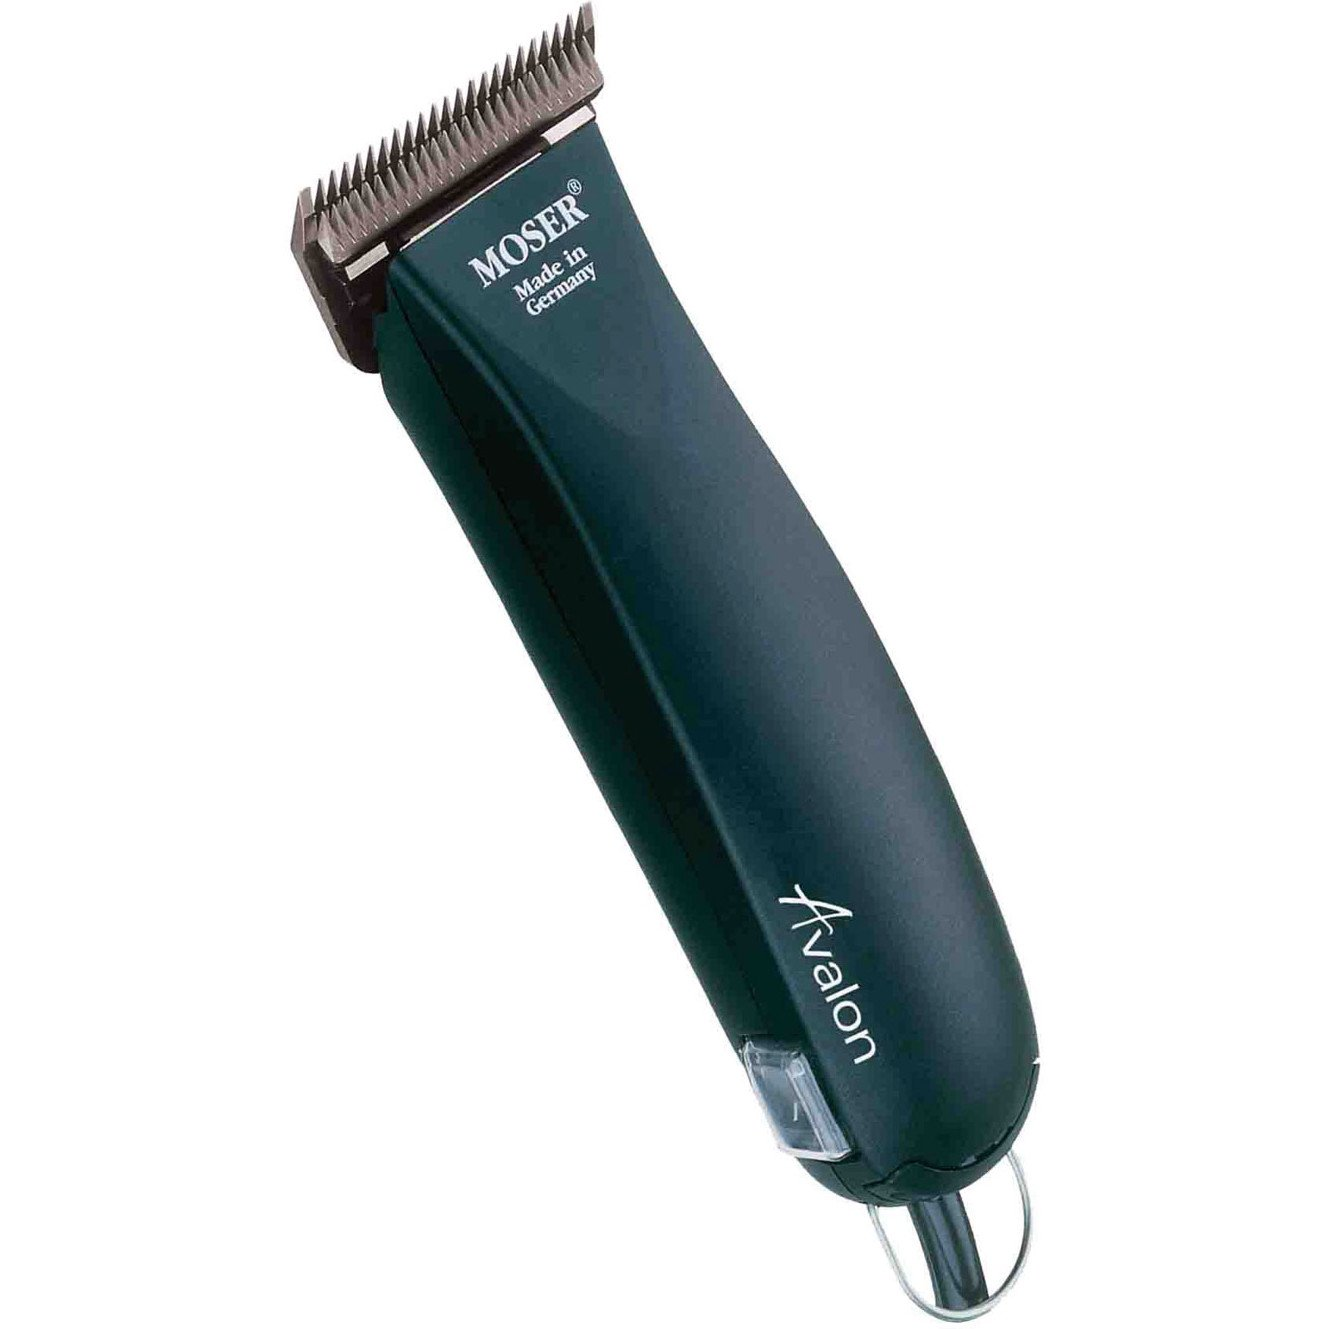 WAHL AVALON BATTERY POWERED HORSE CLIPPERS - LATEST MODEL + FREE POCKET PRO TRIMMER